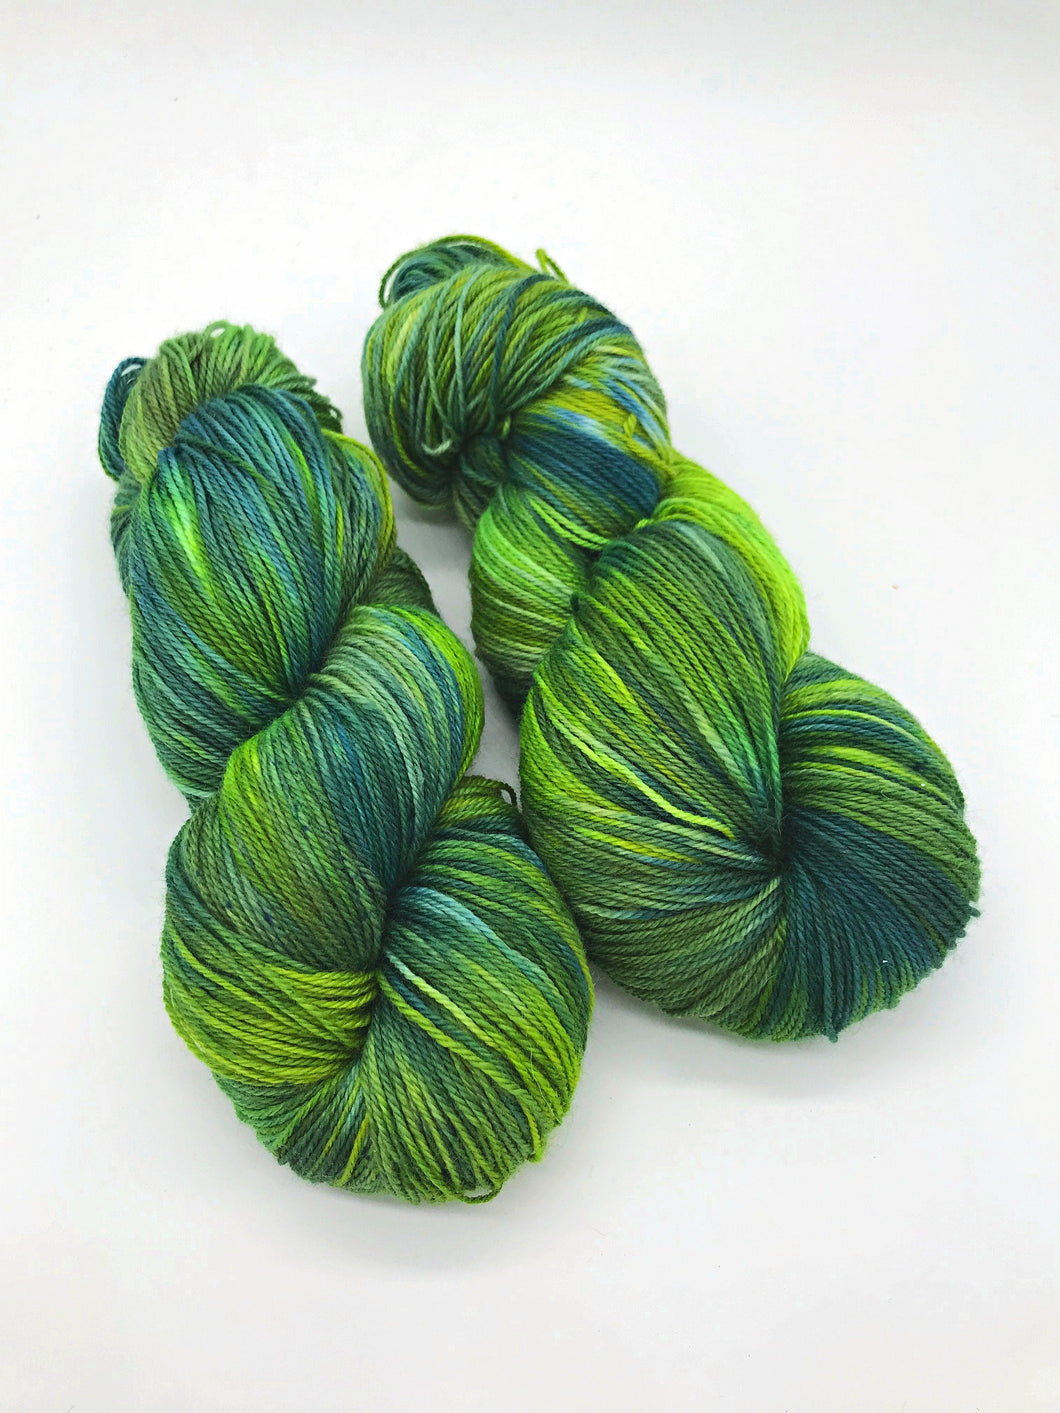 Forest Floor - Hand Dyed Fingering - 3 PLY - 80/20 SW Merino/ Nylon in greens for crochet and knitting, shawls, sock yarn